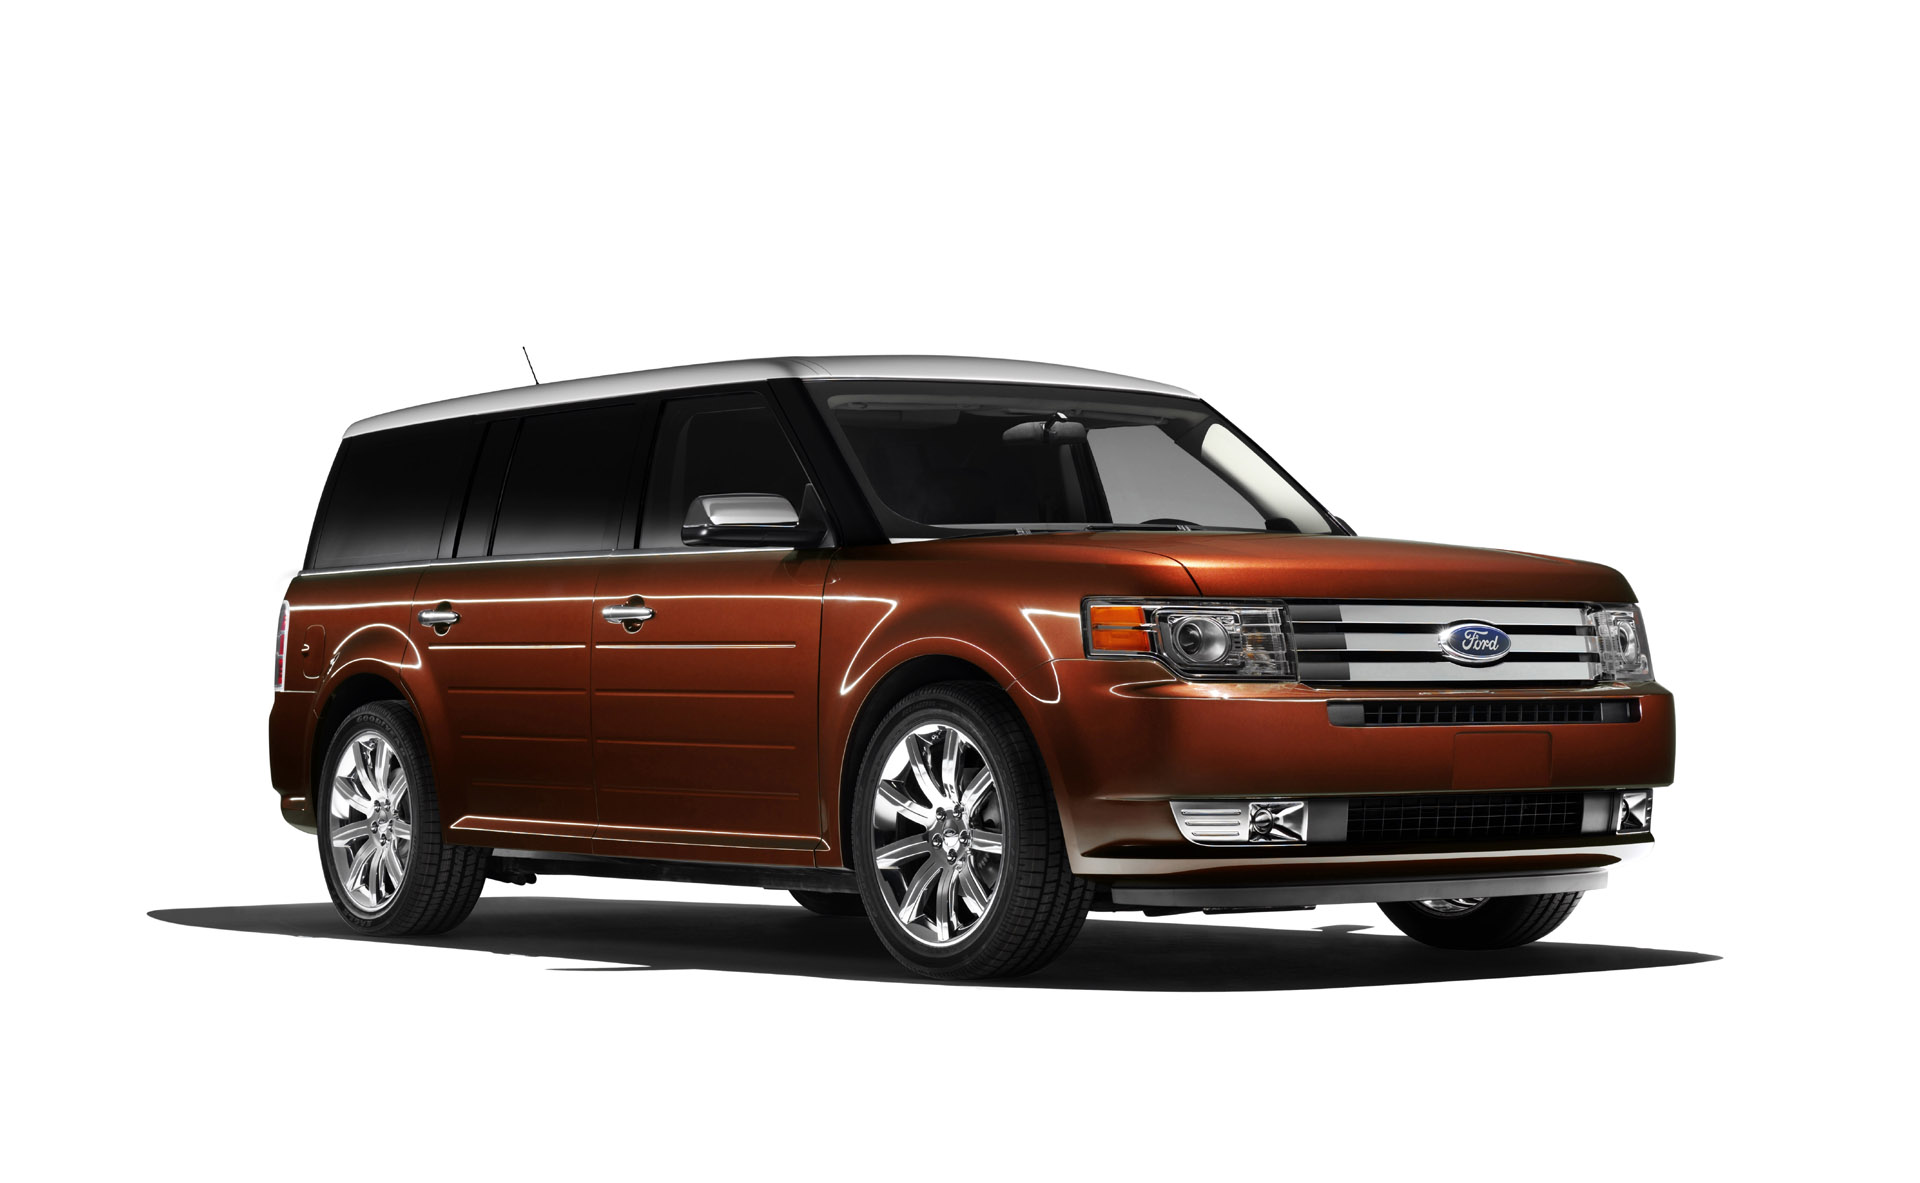 2008 ford flex technical specifications and data engine dimensions and mechanical details. Black Bedroom Furniture Sets. Home Design Ideas